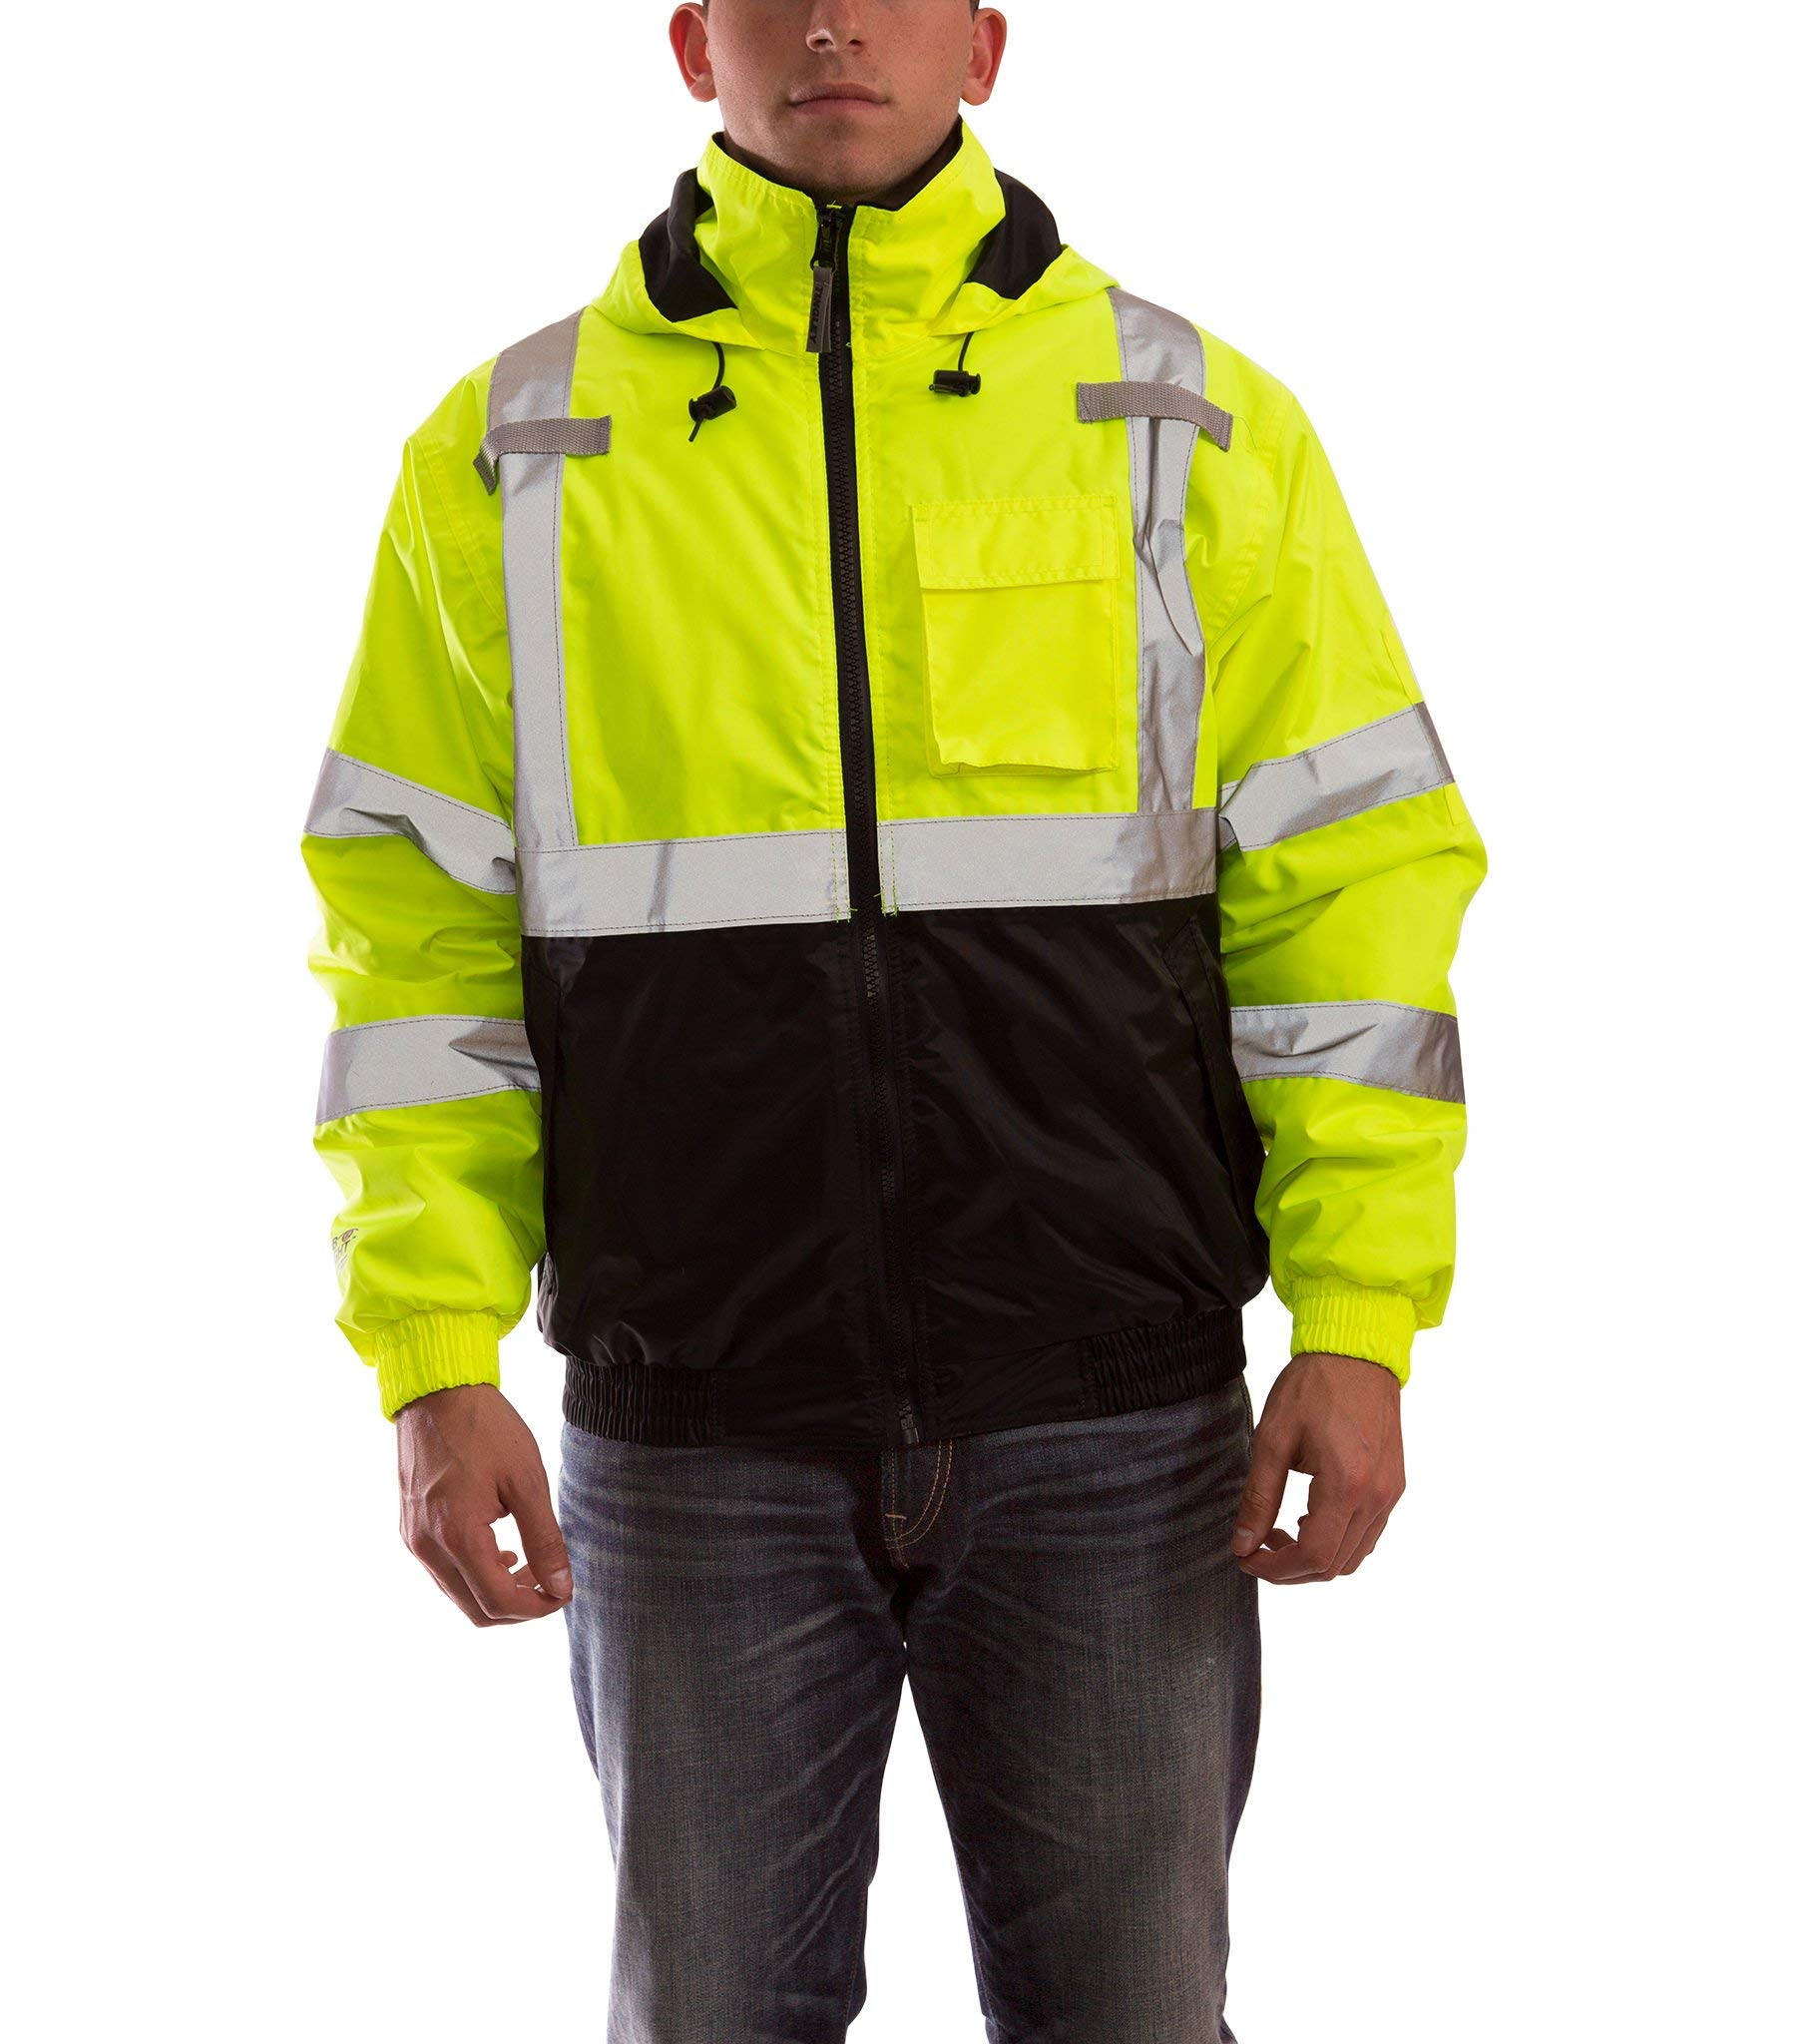 Bomber Ii High Visibility Waterproof Jacket, Yellow, L by TINGLEY